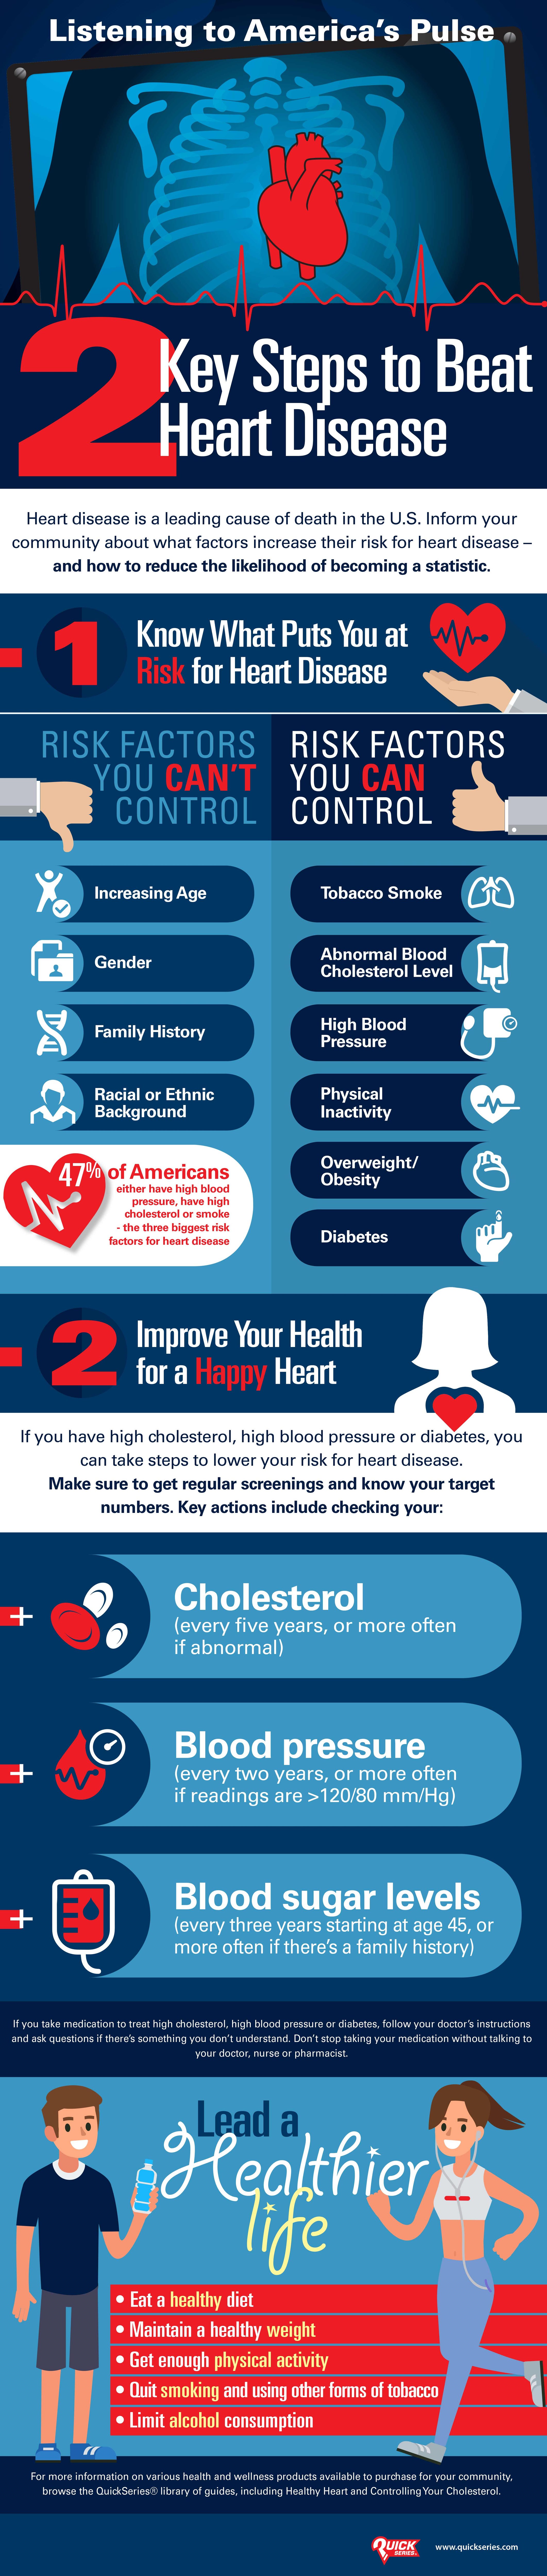 Tips to beating heart disease